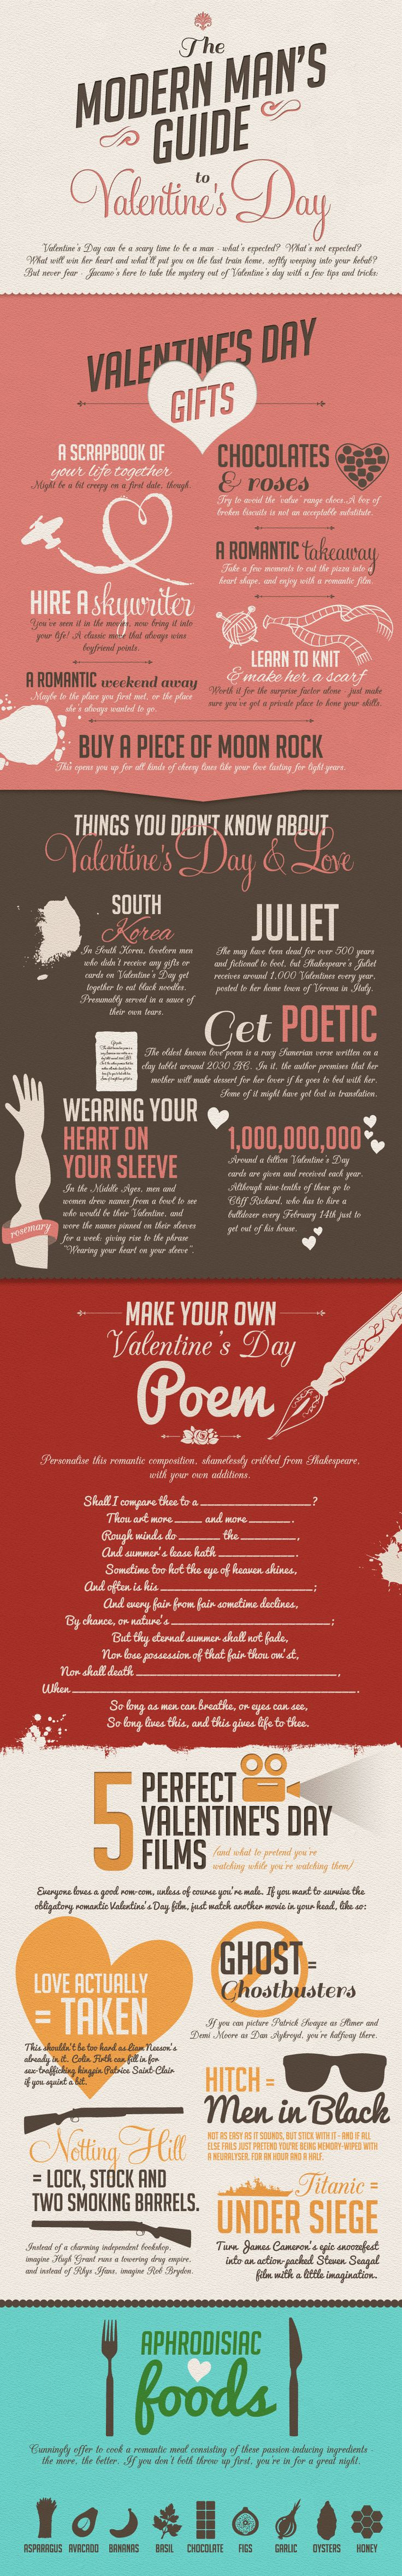 The Modern Man's Guide to Valentine's Day